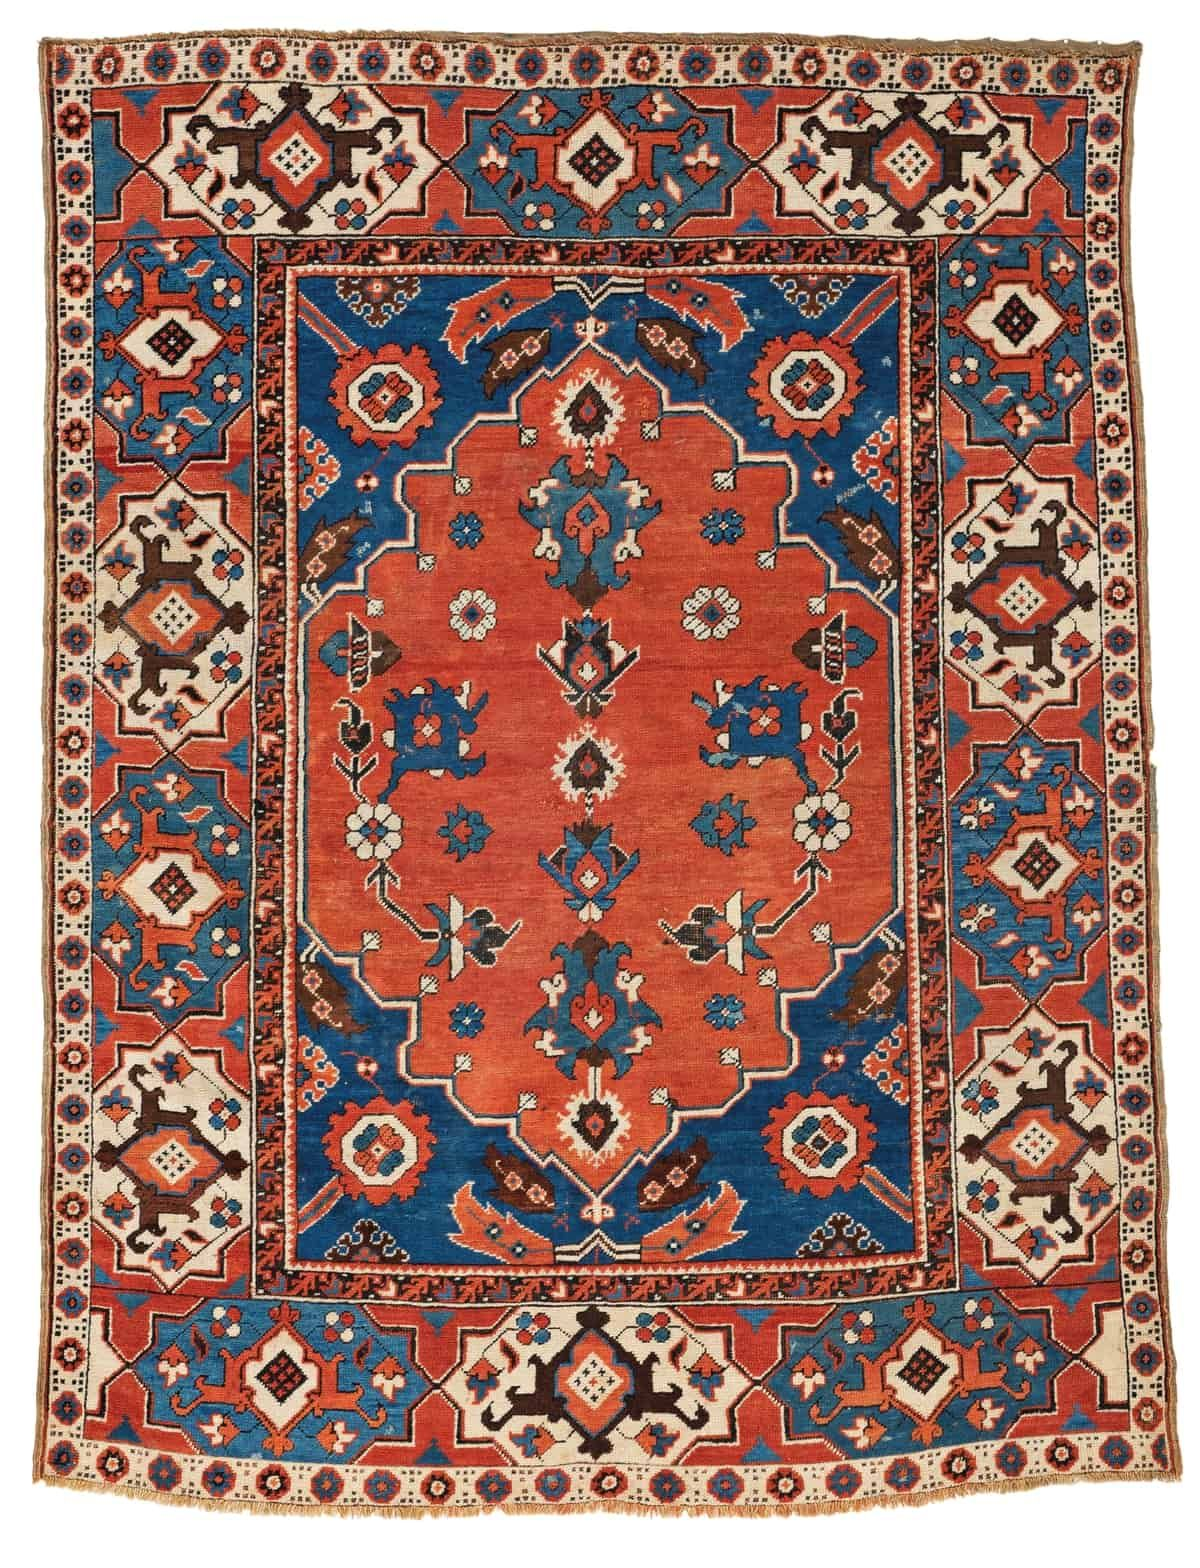 Antique Rugs Masterpieces Of An